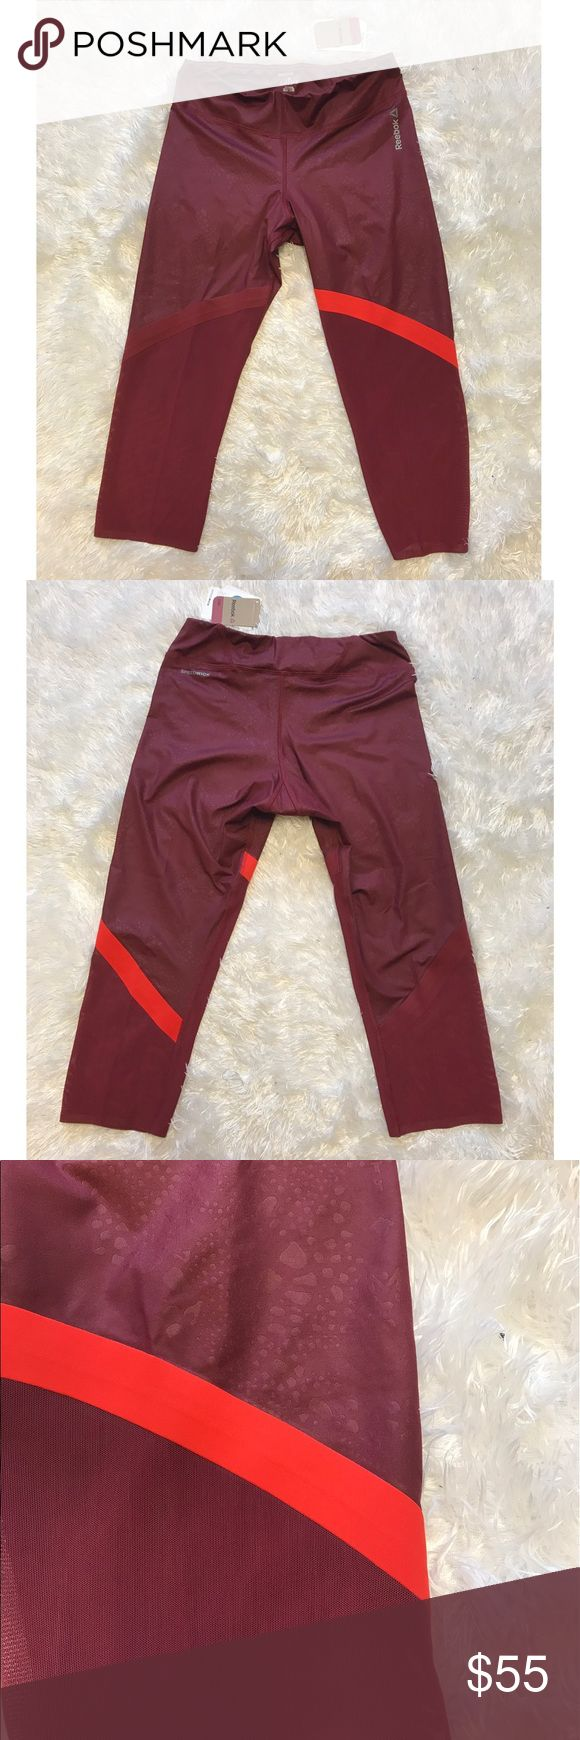 NWT Reebok Mesh Merlot Capris NWT Reebok mesh studio workout capris in merlot. Made with speed wick material for fast drying. The lower half of the leg is a semi see through mesh material. Bright stripe on left leg! Be the most stylish one at the gym! ❤️ Reebok Pants Leggings